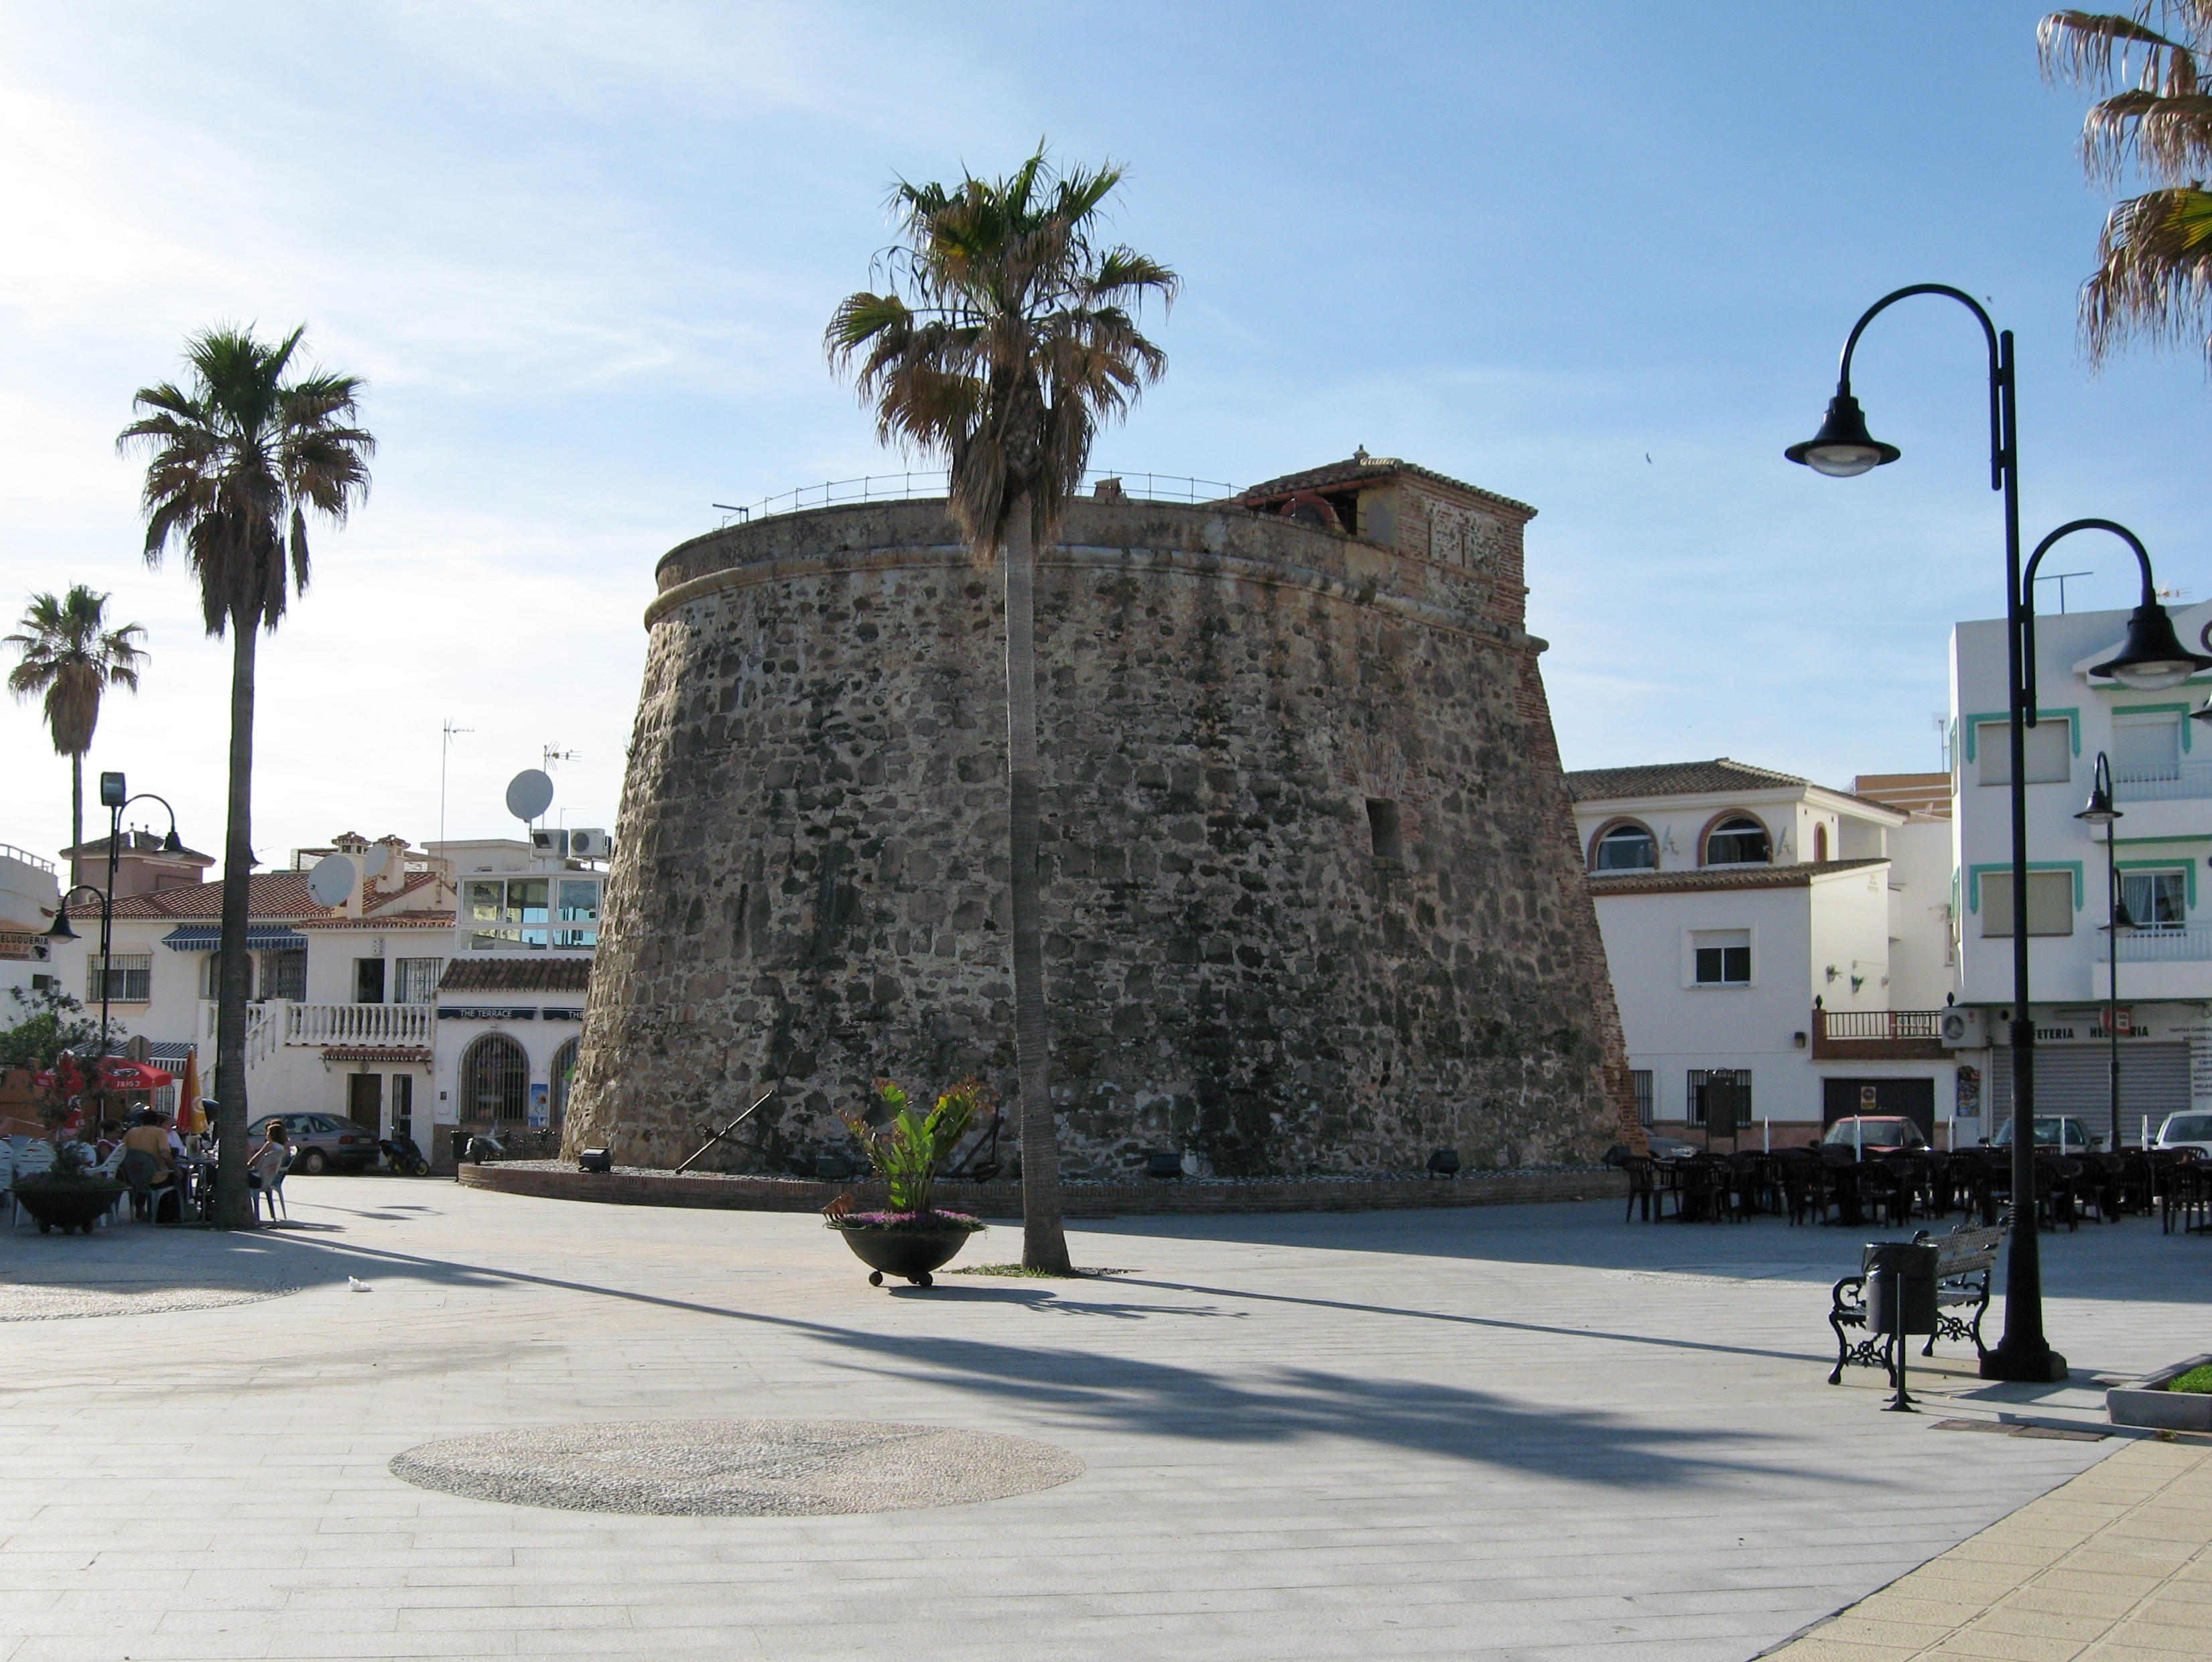 La Cala de Mijas Spain  city pictures gallery : Description La Cala de Mijas 04